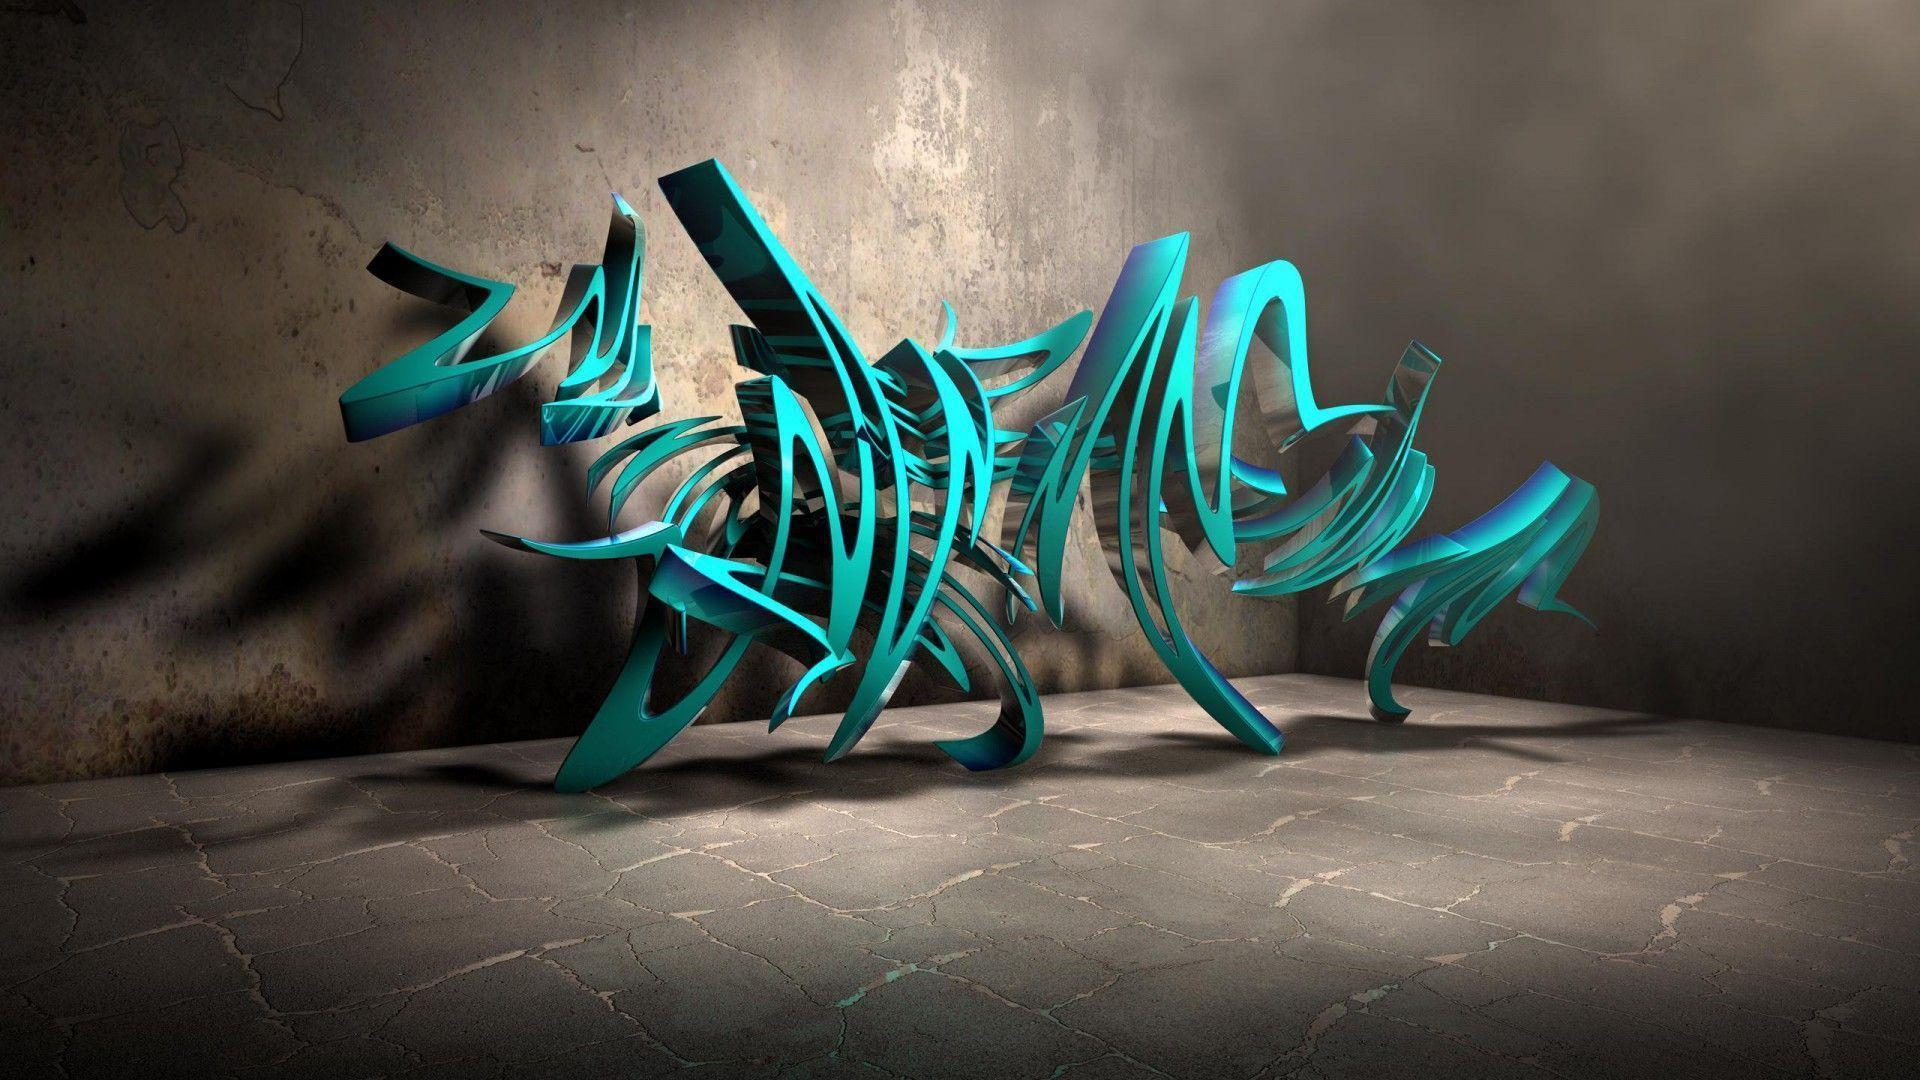 hd graffiti wallpapers wallpaper cave